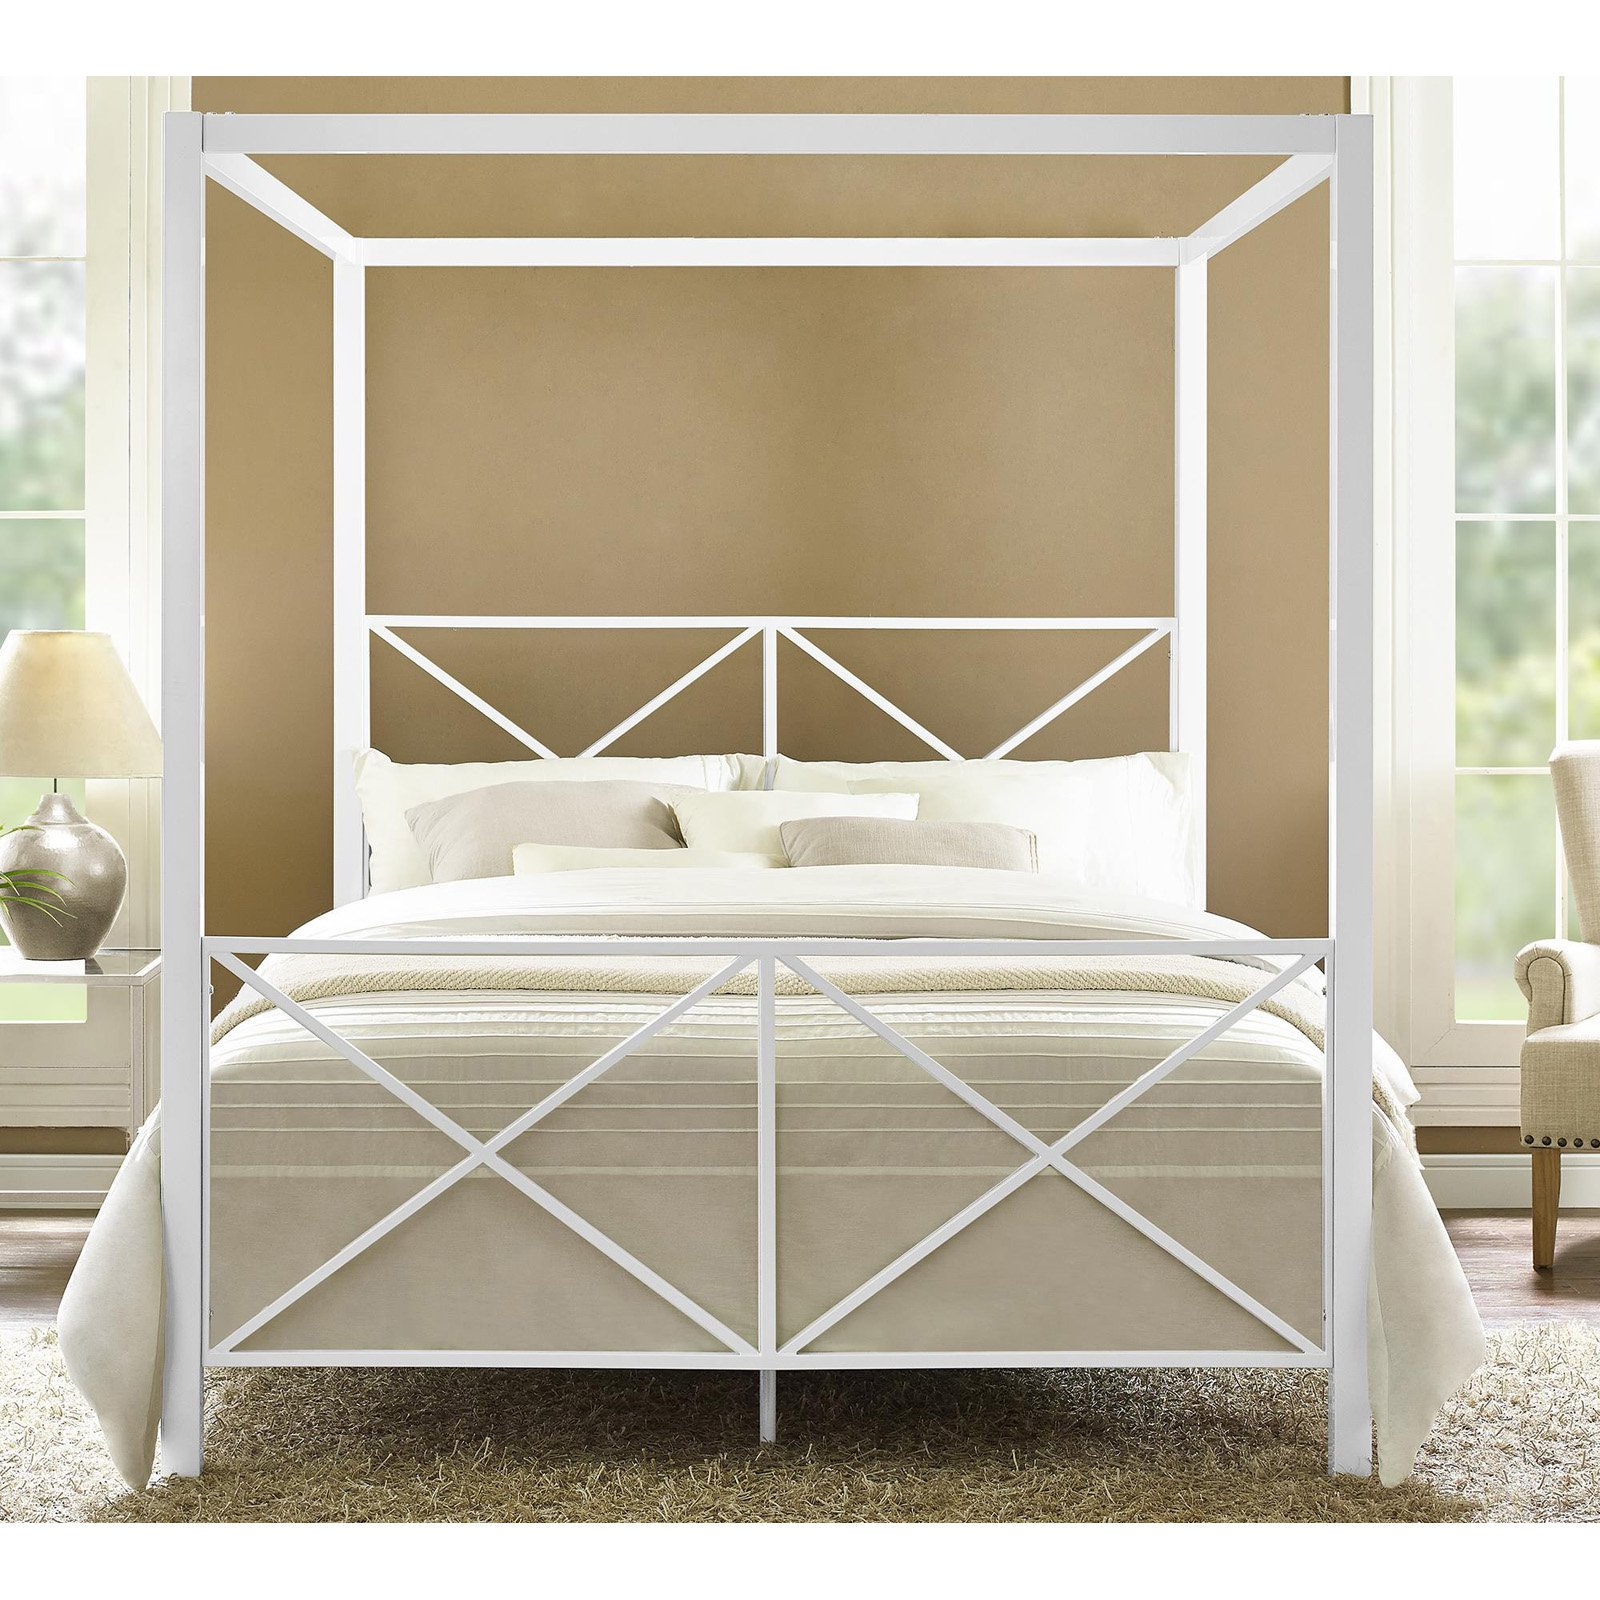 Trend Canopy Bed Frame Plans Free